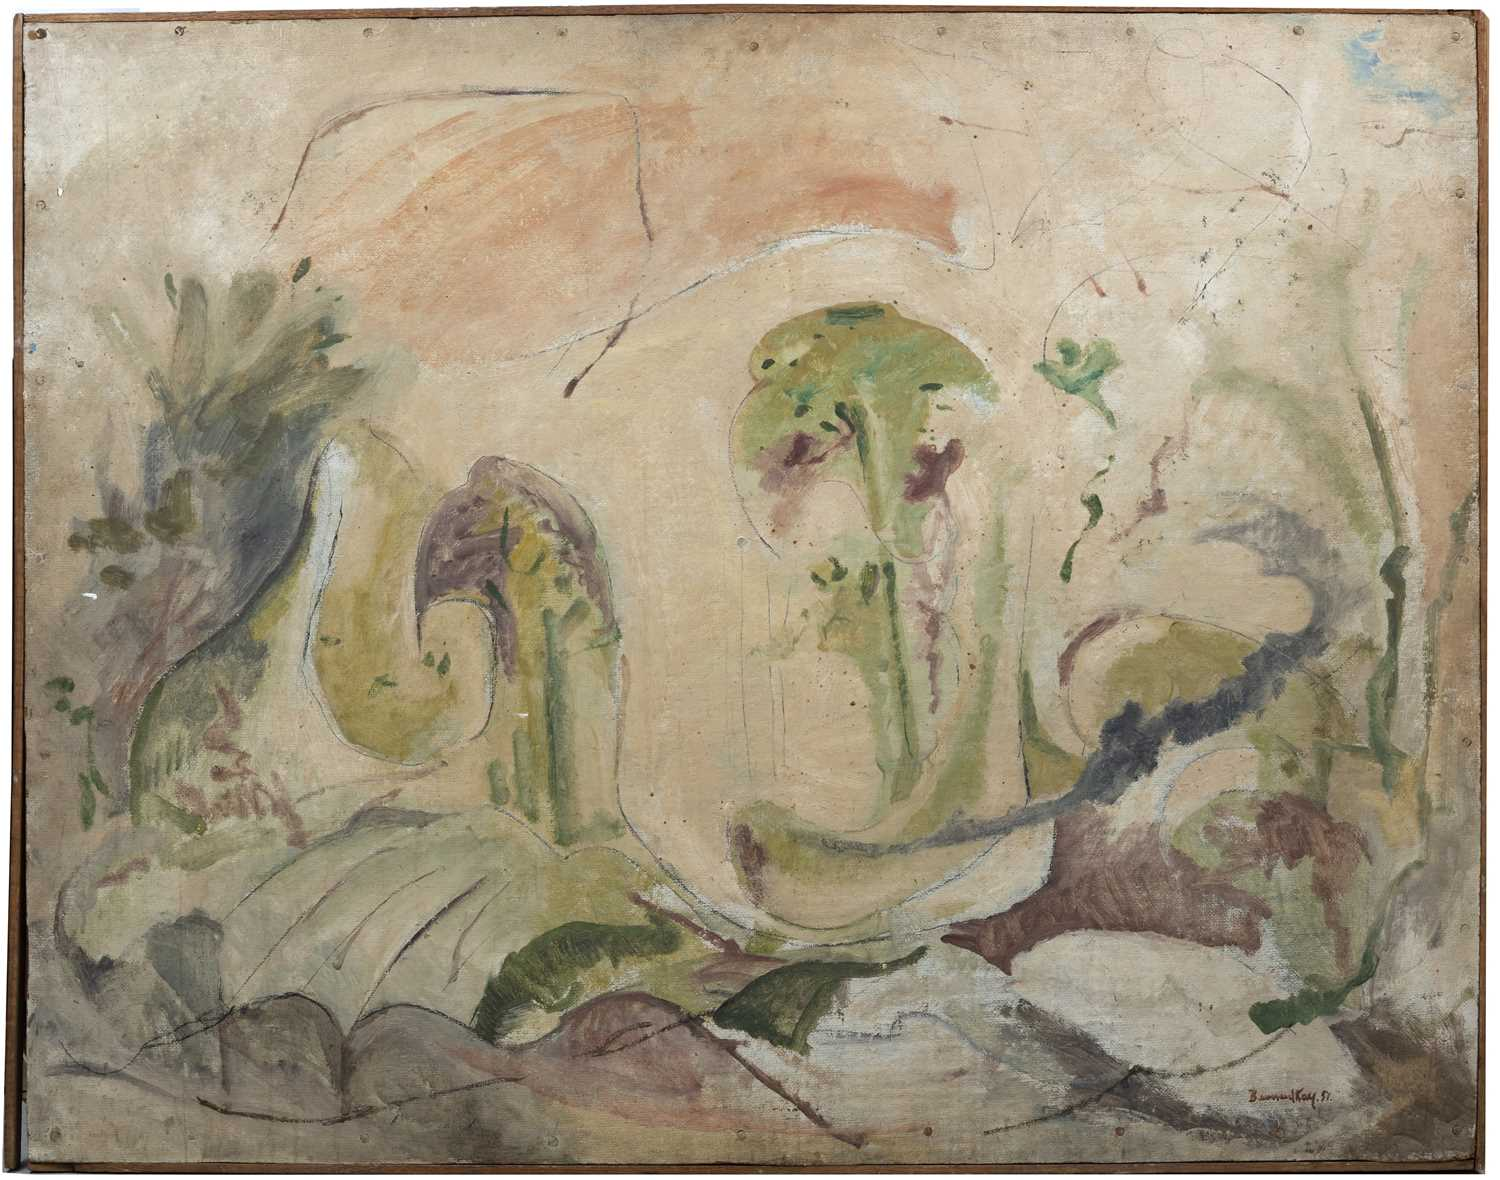 Bernard Kay (1927-2021) Untitled landscape, 1951 signed and dated (lower right) oil on board 102 x - Image 2 of 4